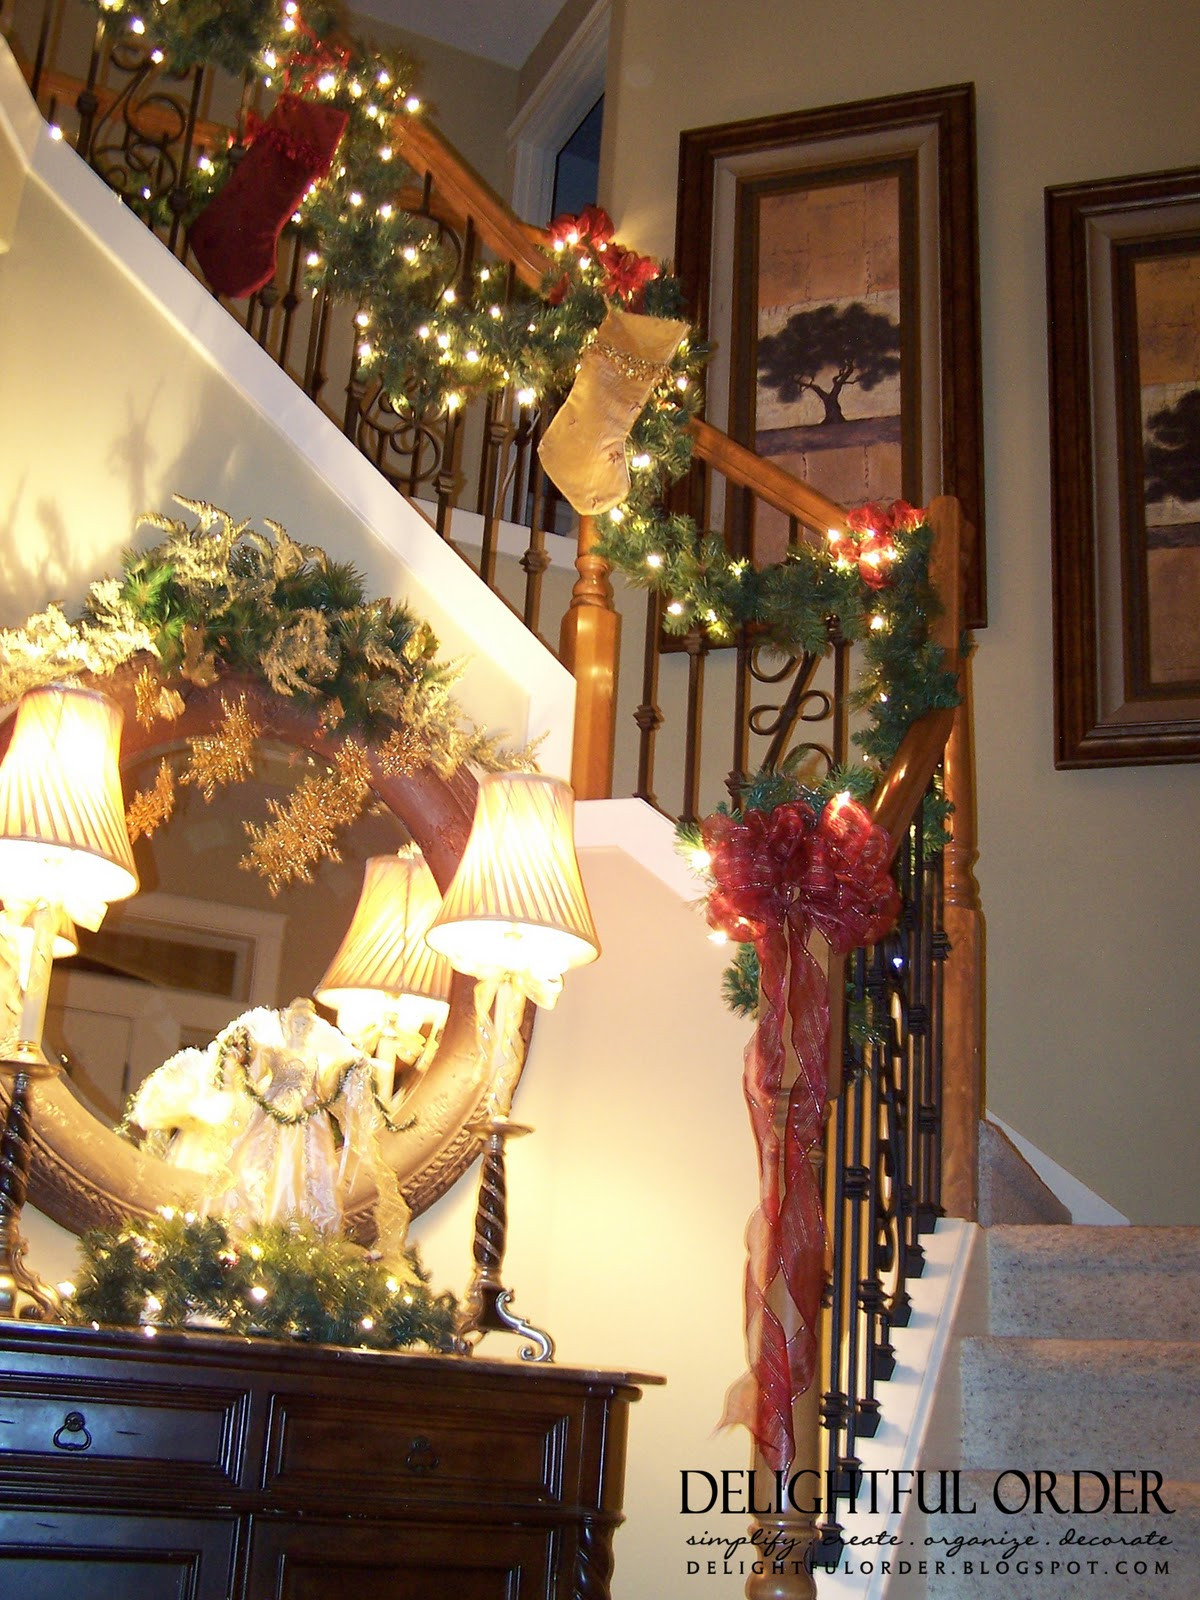 Staircase Christmas Decorations  Delightful Order Staircase Christmas Decorating